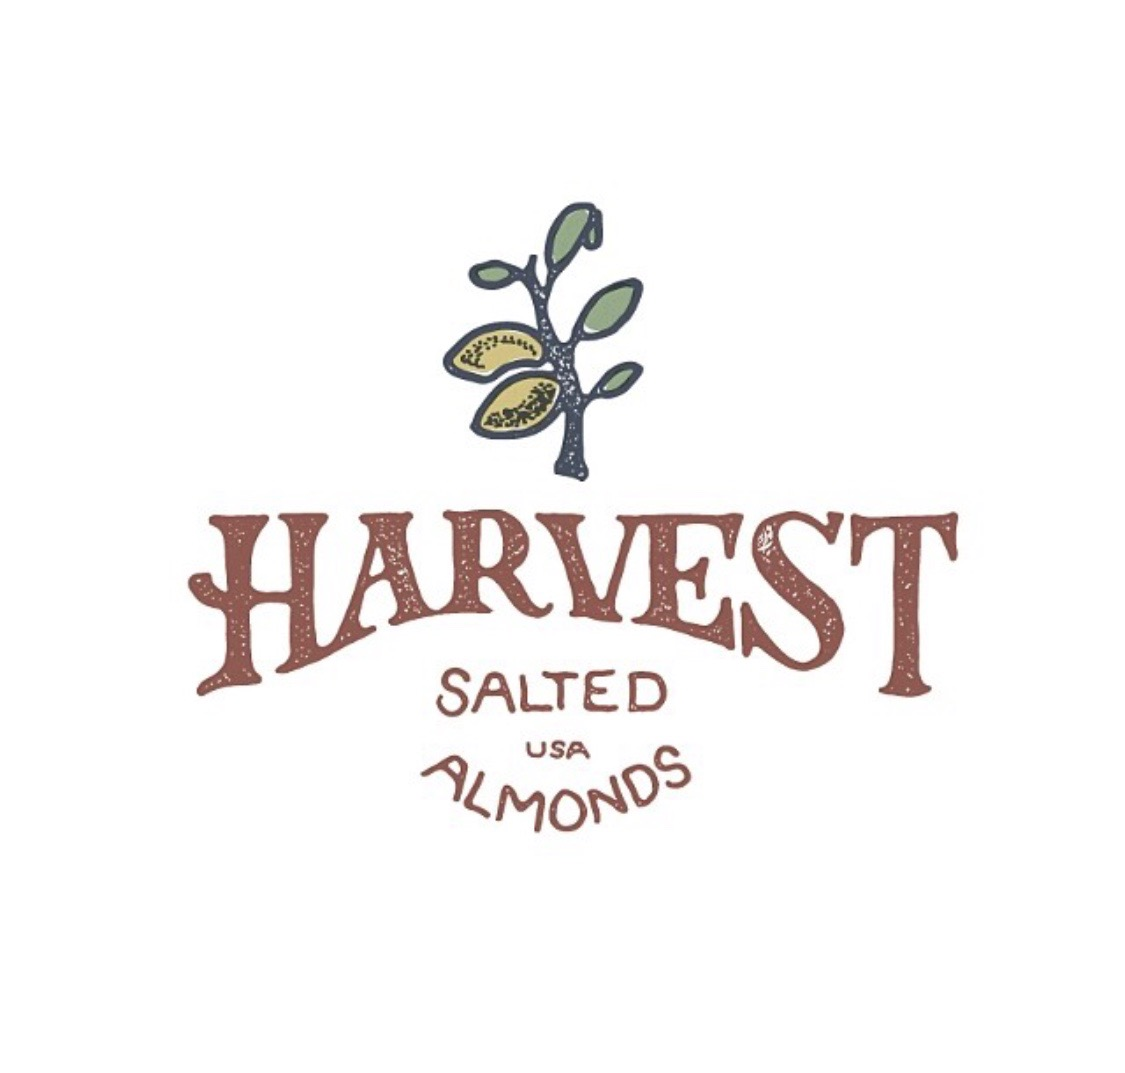 Harvest Salted Almonds, Branding